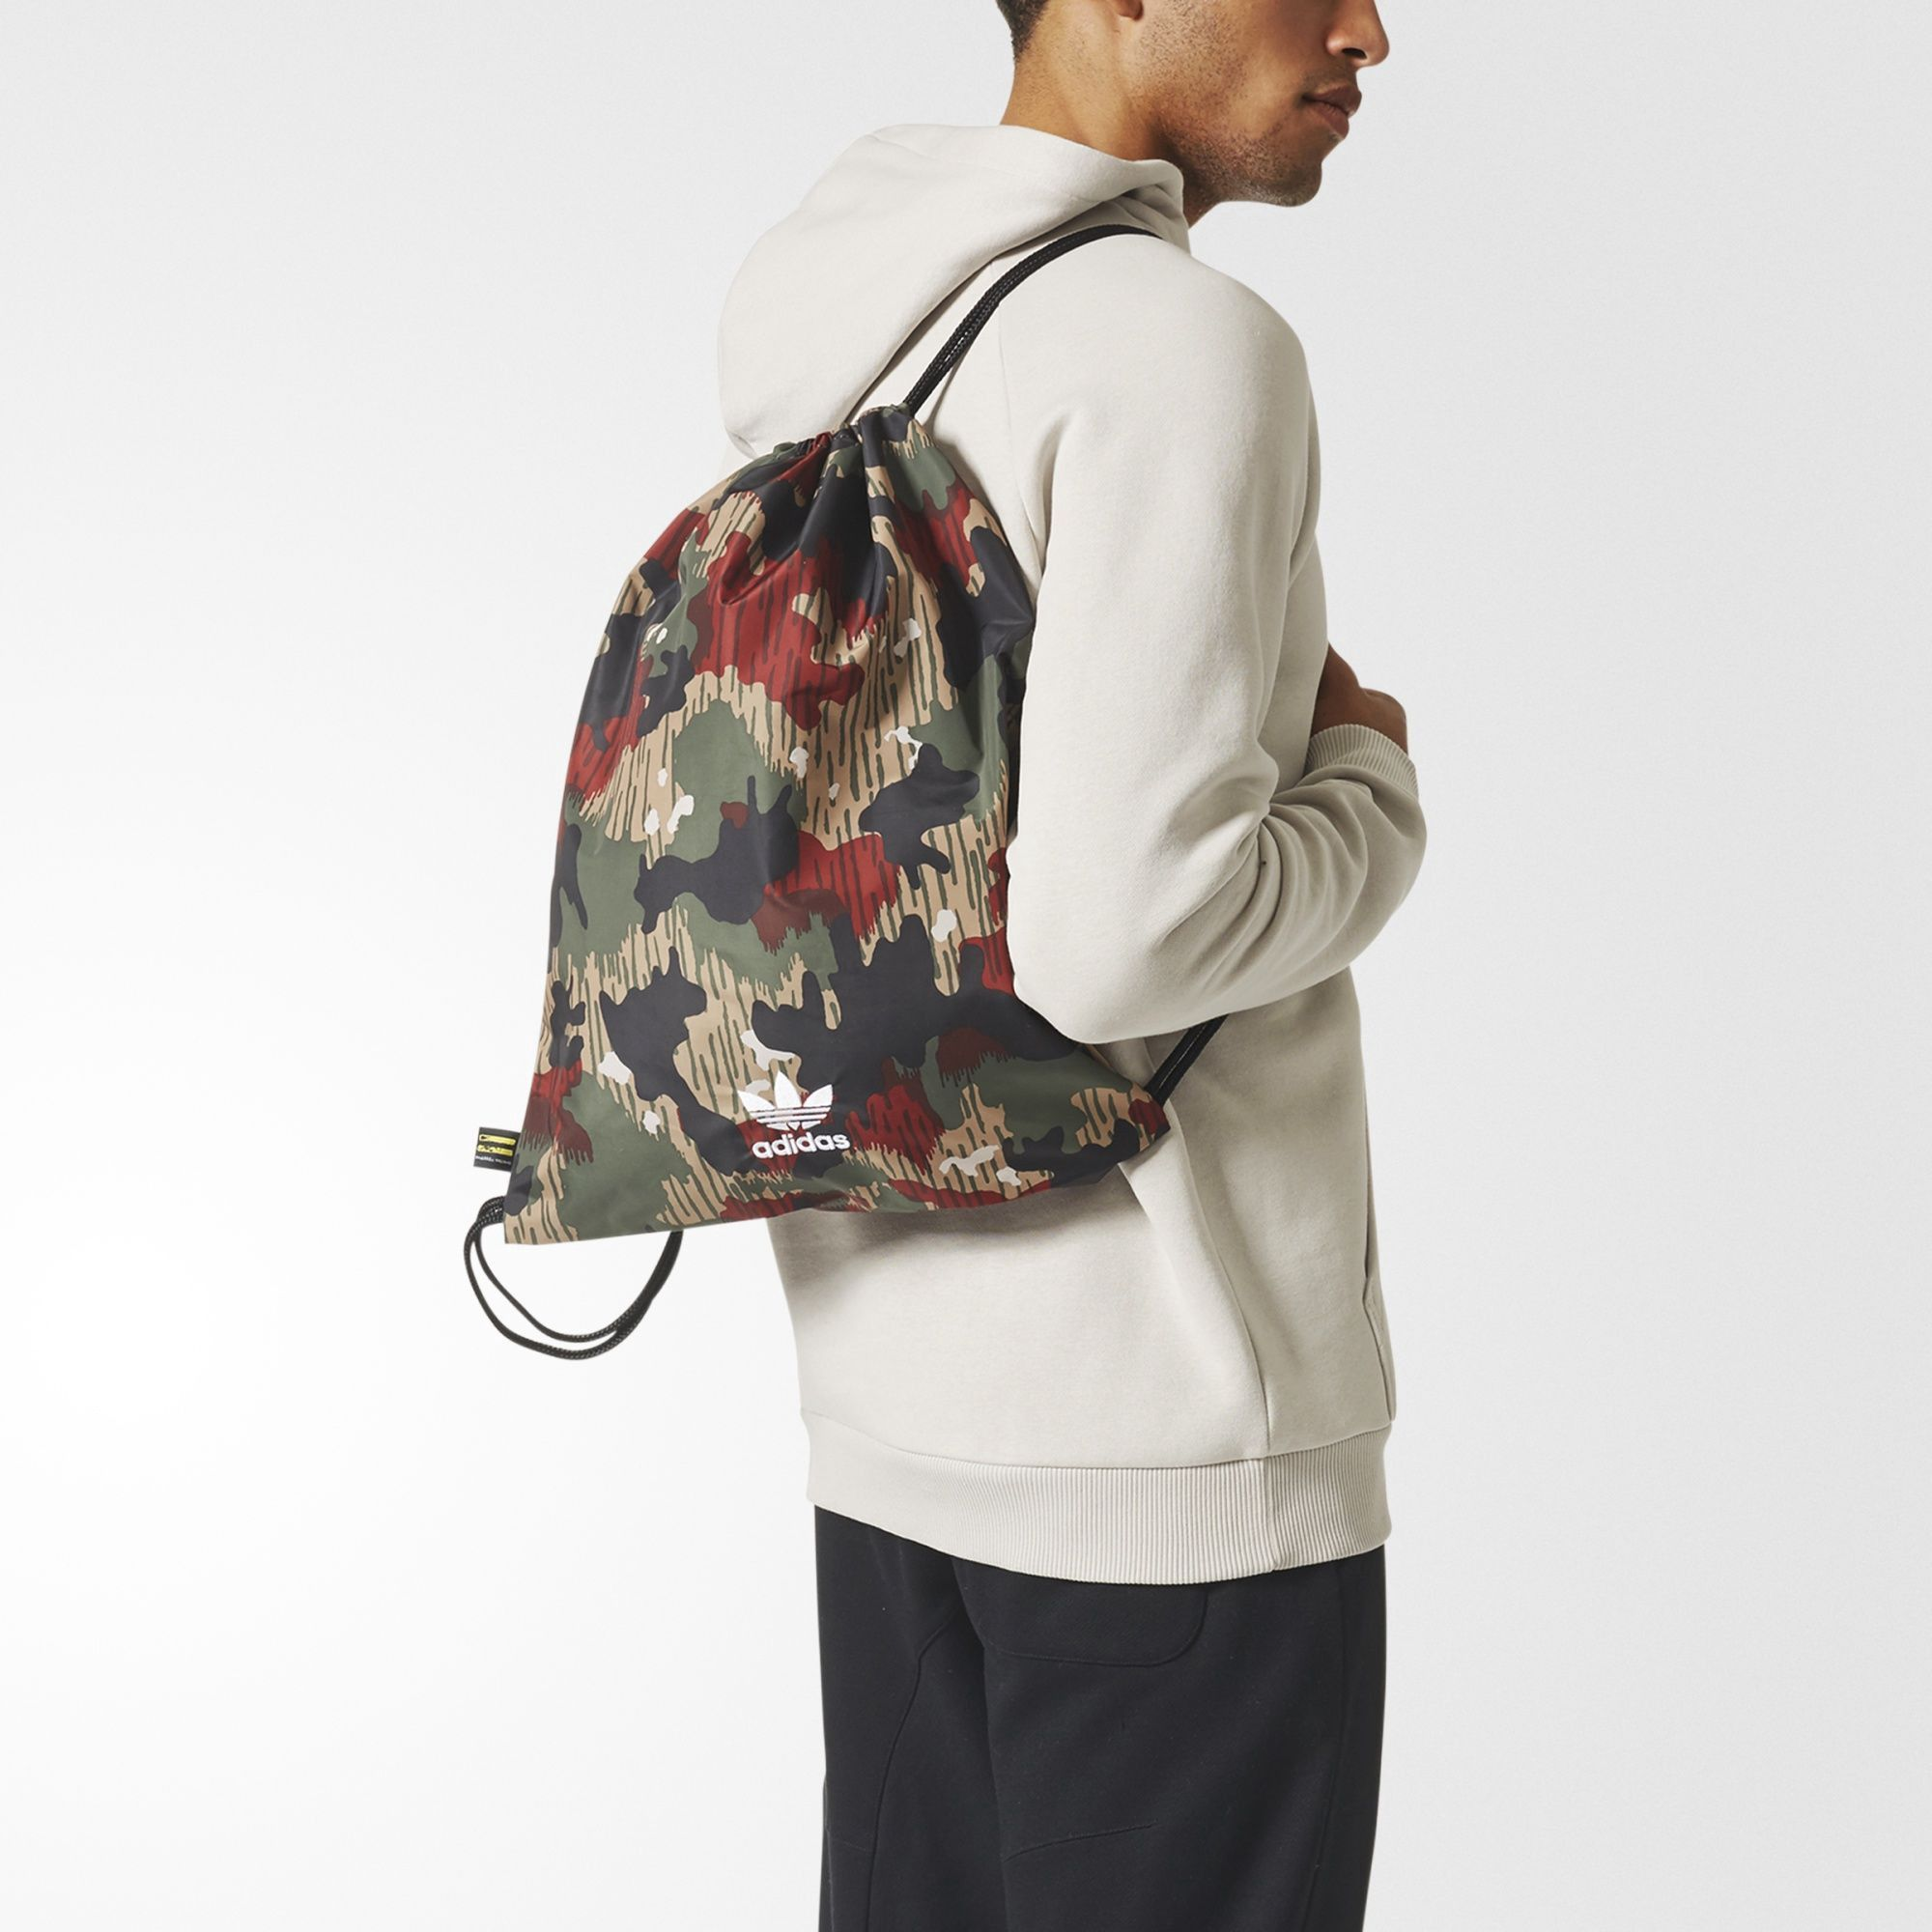 ADIDAS ORIGINALS Pharrell Williams Hu Hiking Gym Sack.  adidasoriginals   cloth   d7e2e11789